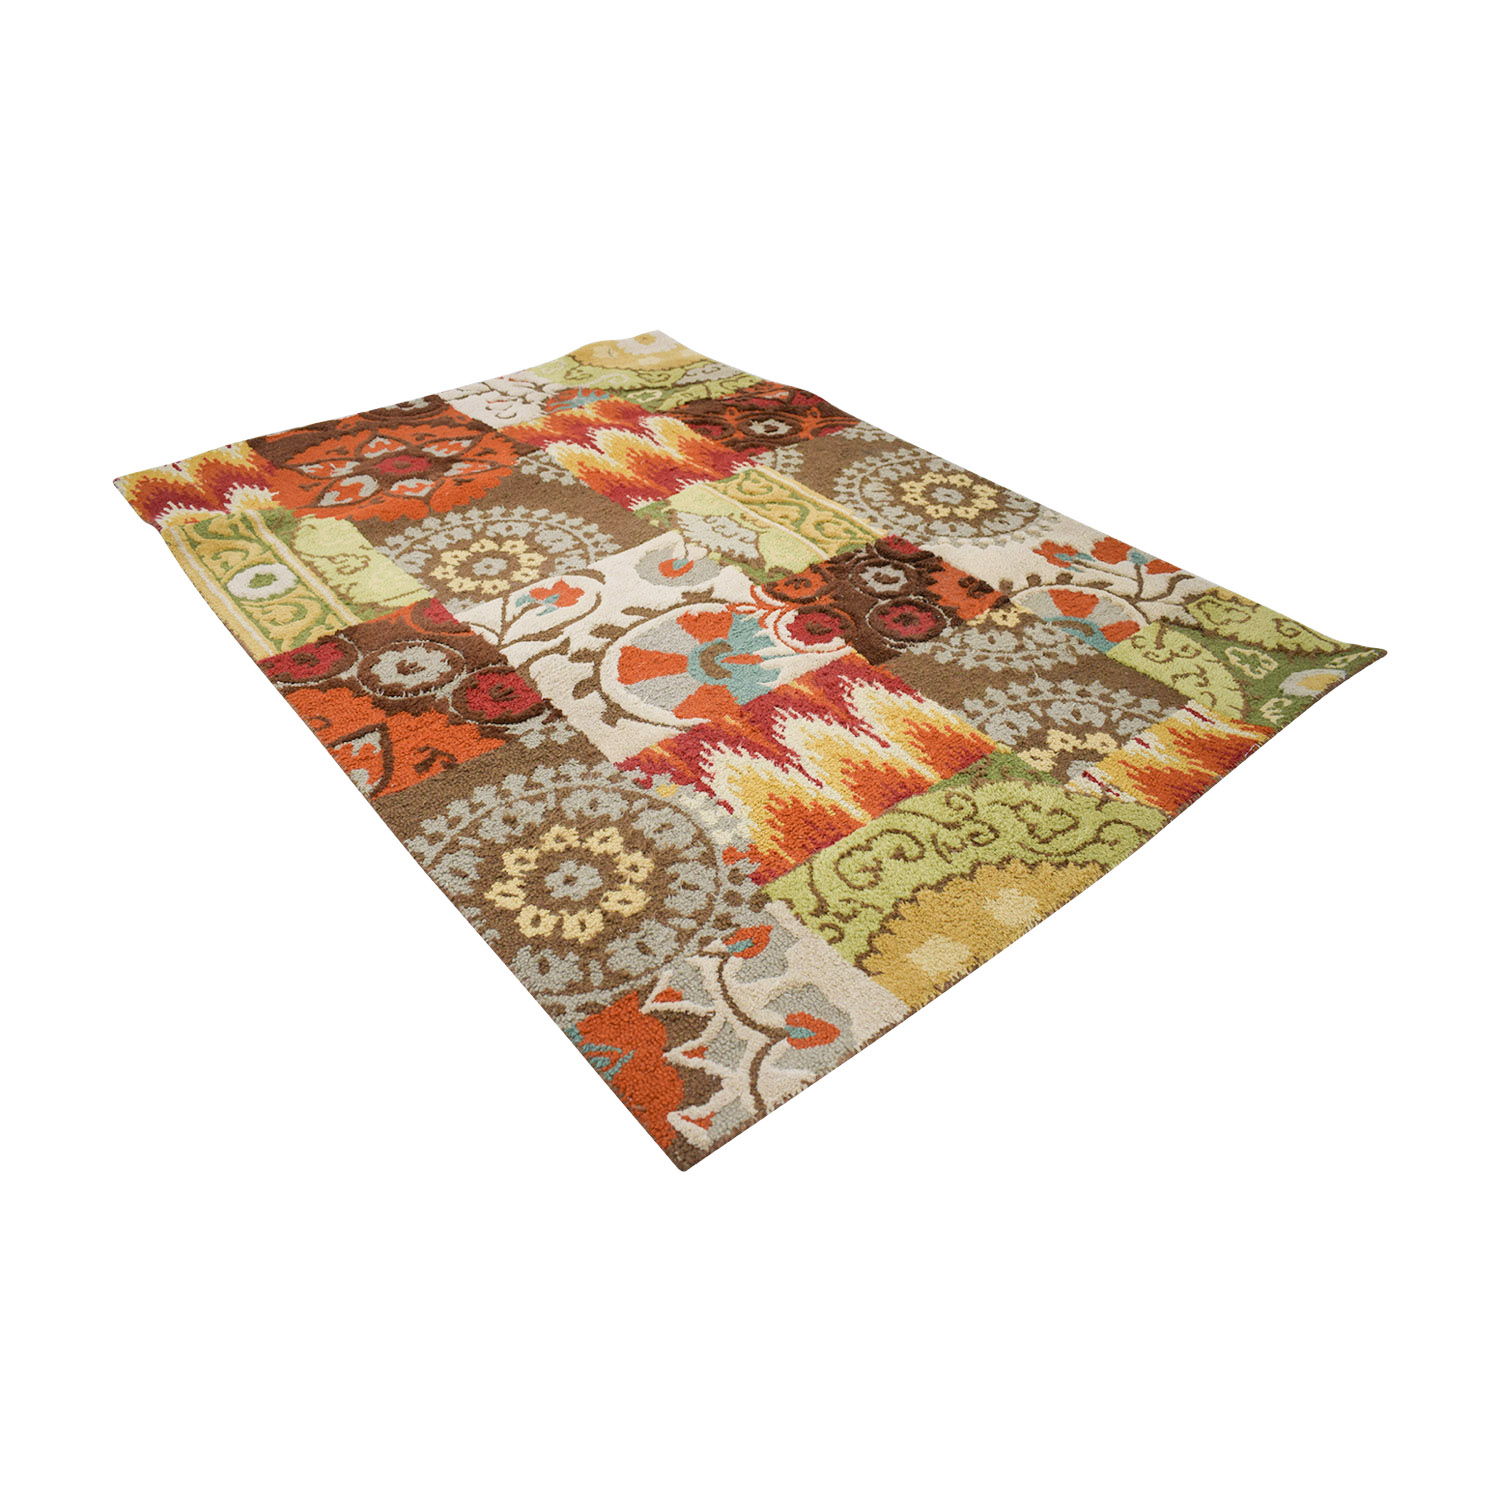 Threshold Threshold Patchwork Multi-Colored Rug nj